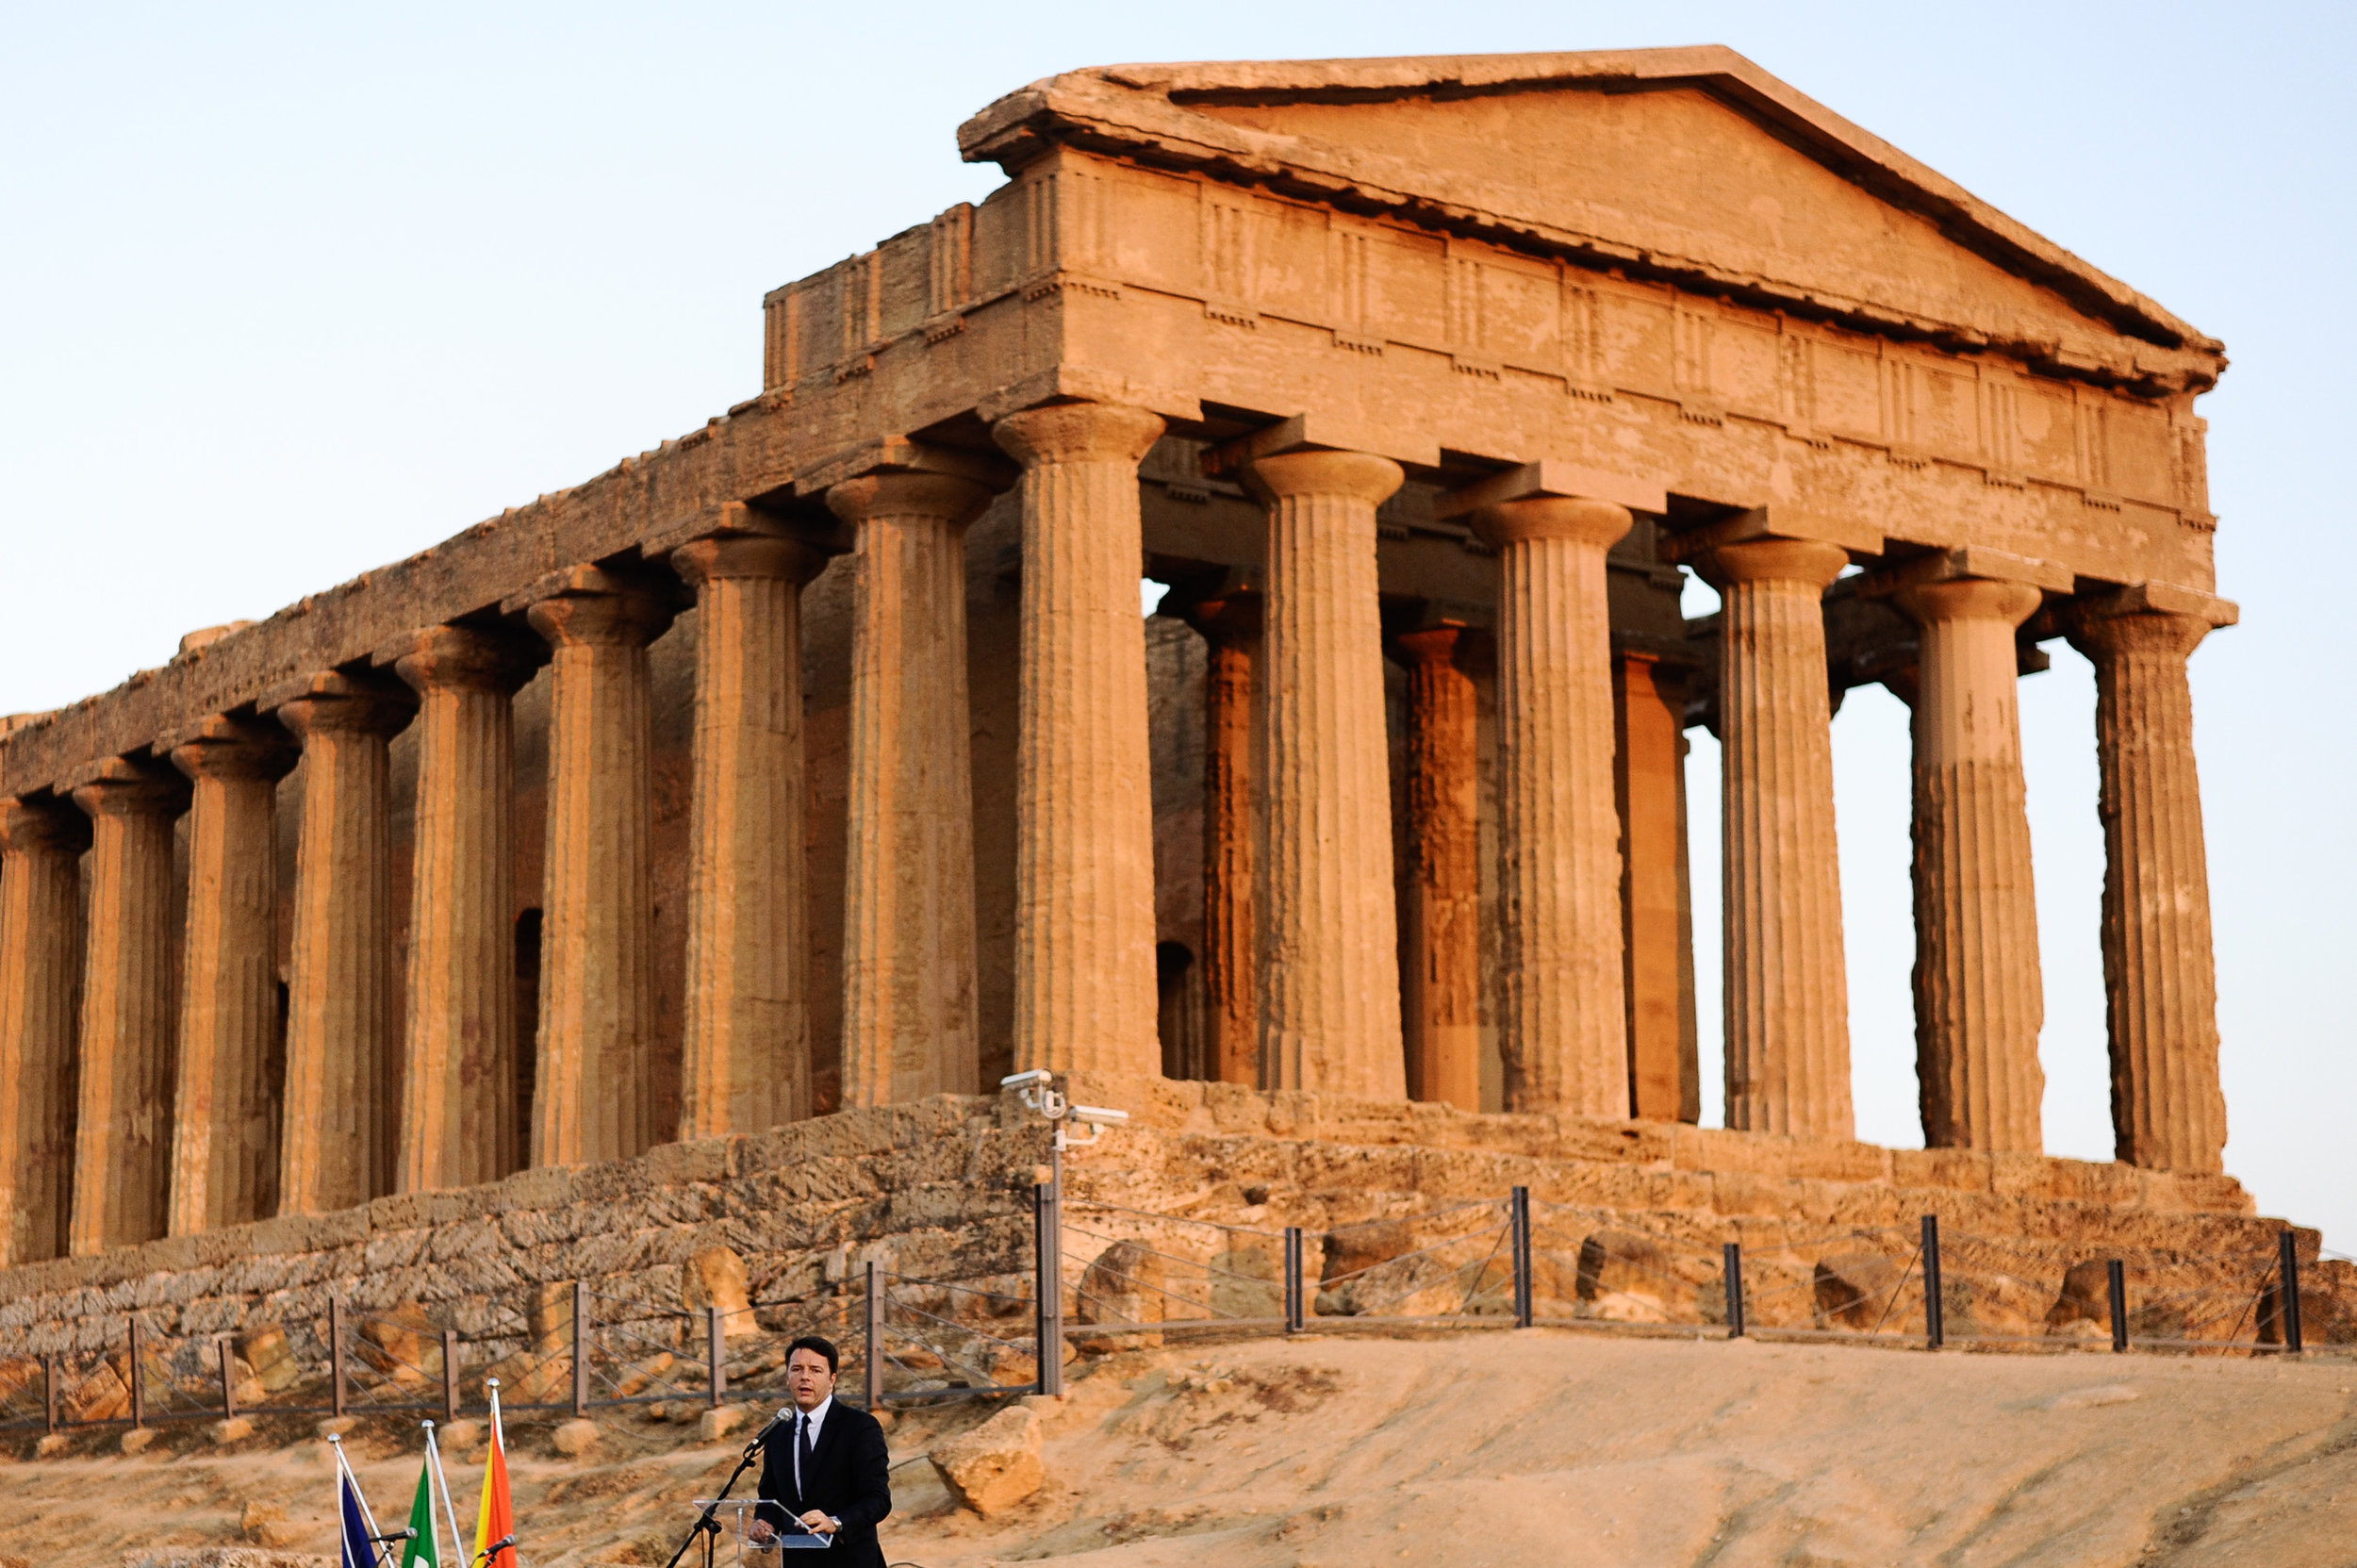 Italian Prime Minister Matteo Renzi delivers a speech at the Valley of the temples in the Sicilian town of Agrigento, Southern Italy, September 10, 2016.